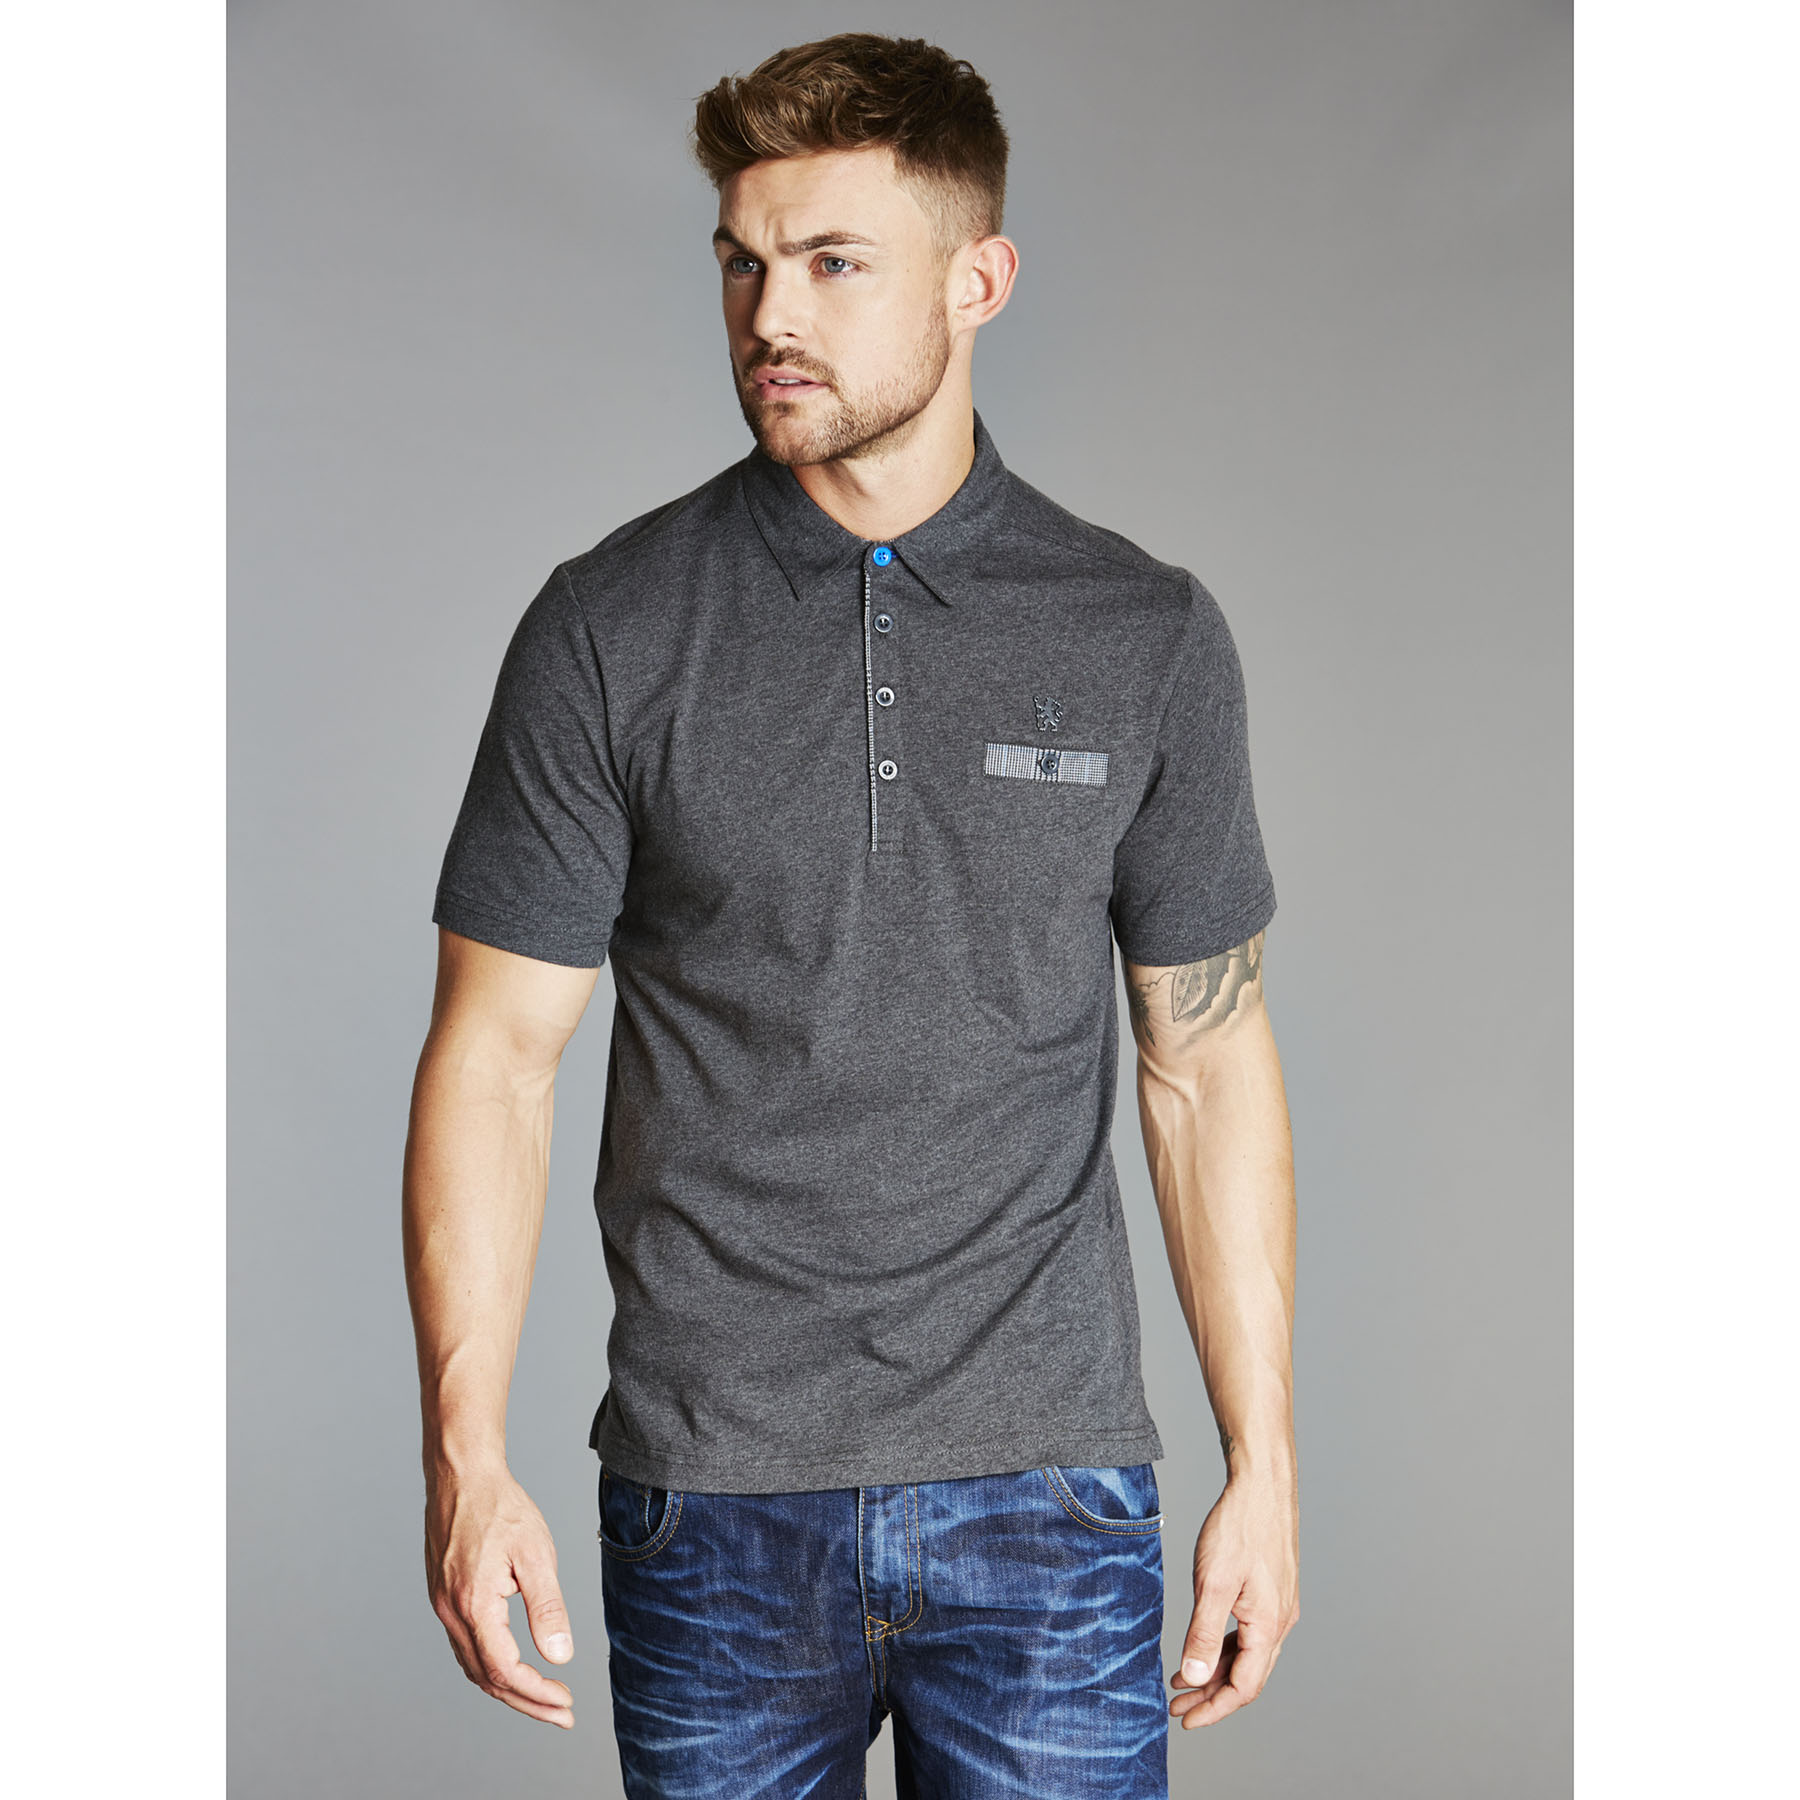 Chelsea Collection Pocket Polo Shirt - Charcoal - Mens